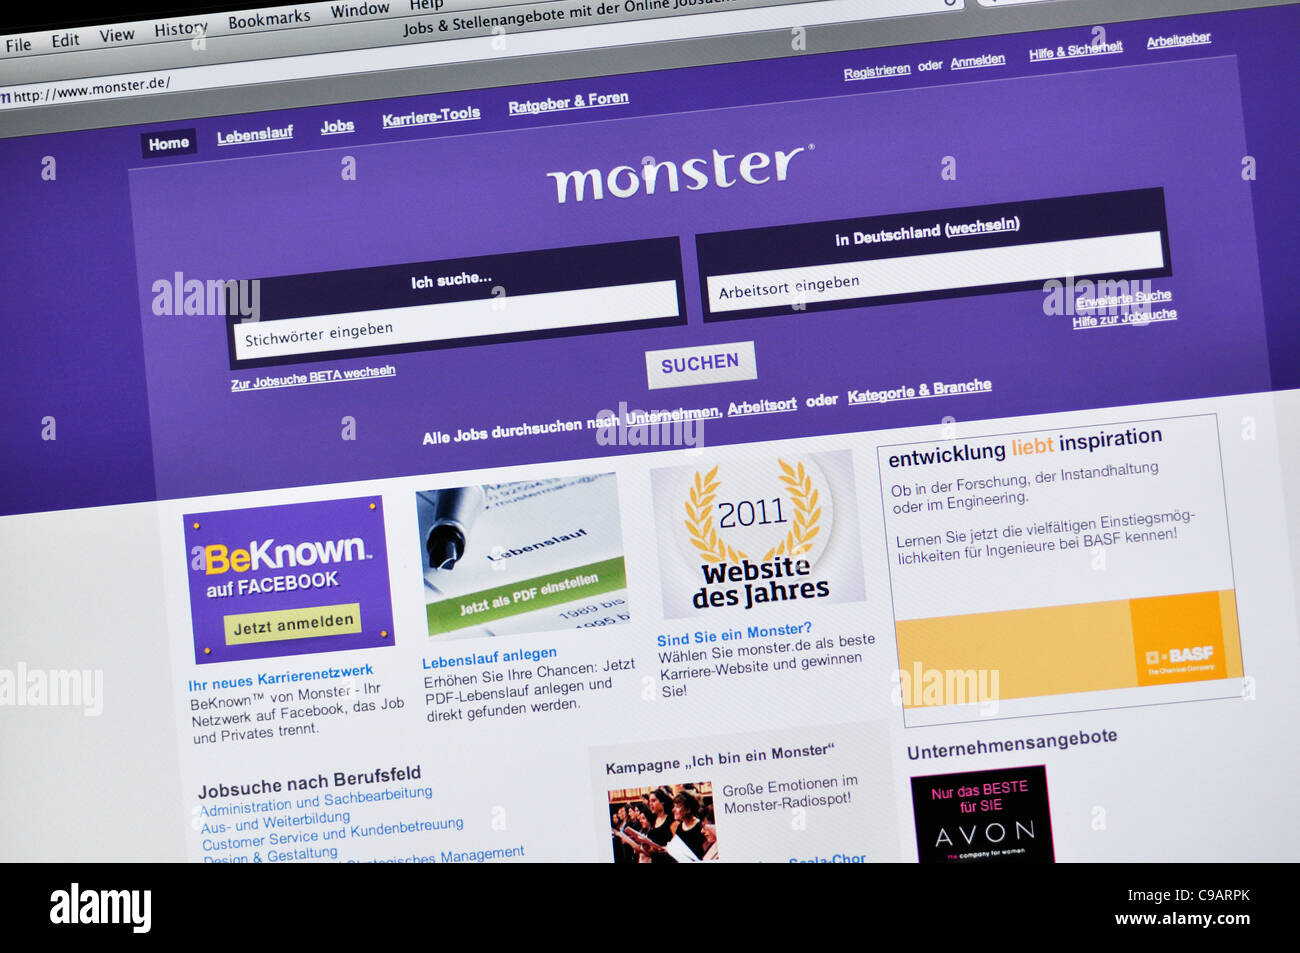 Monster job search website - German Stock Photo: 40190827 - Alamy